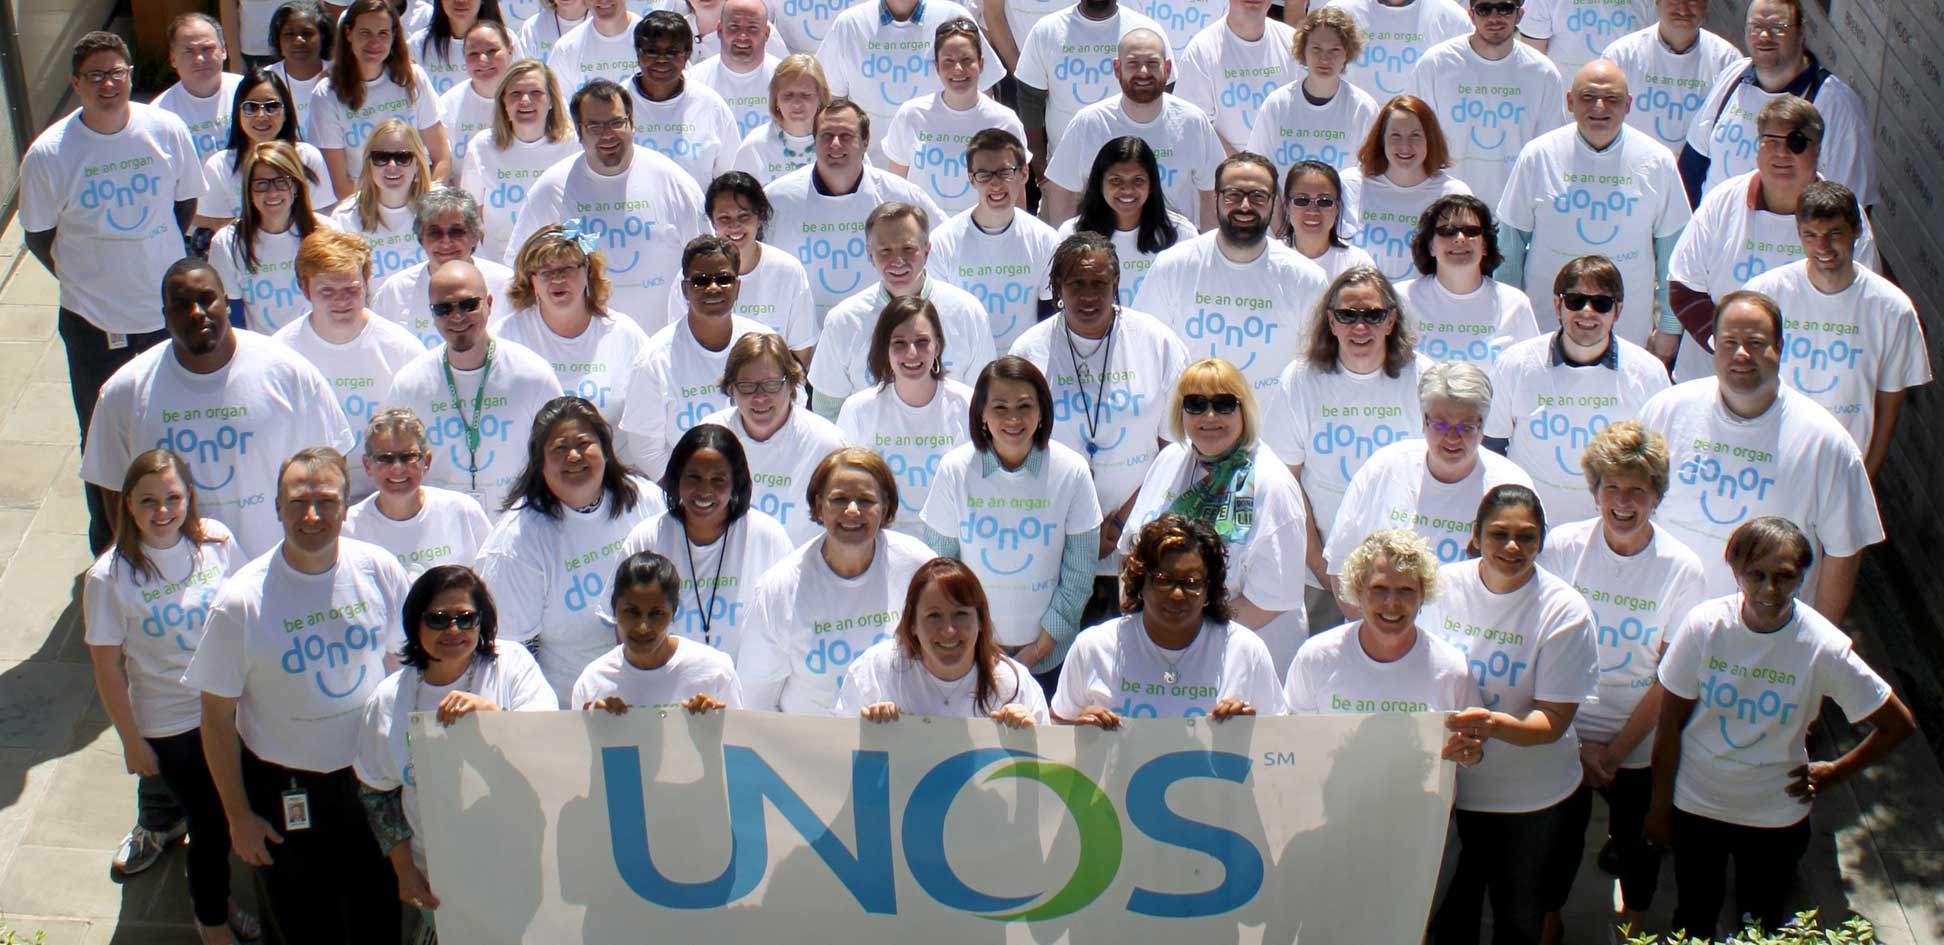 UNOS employee events